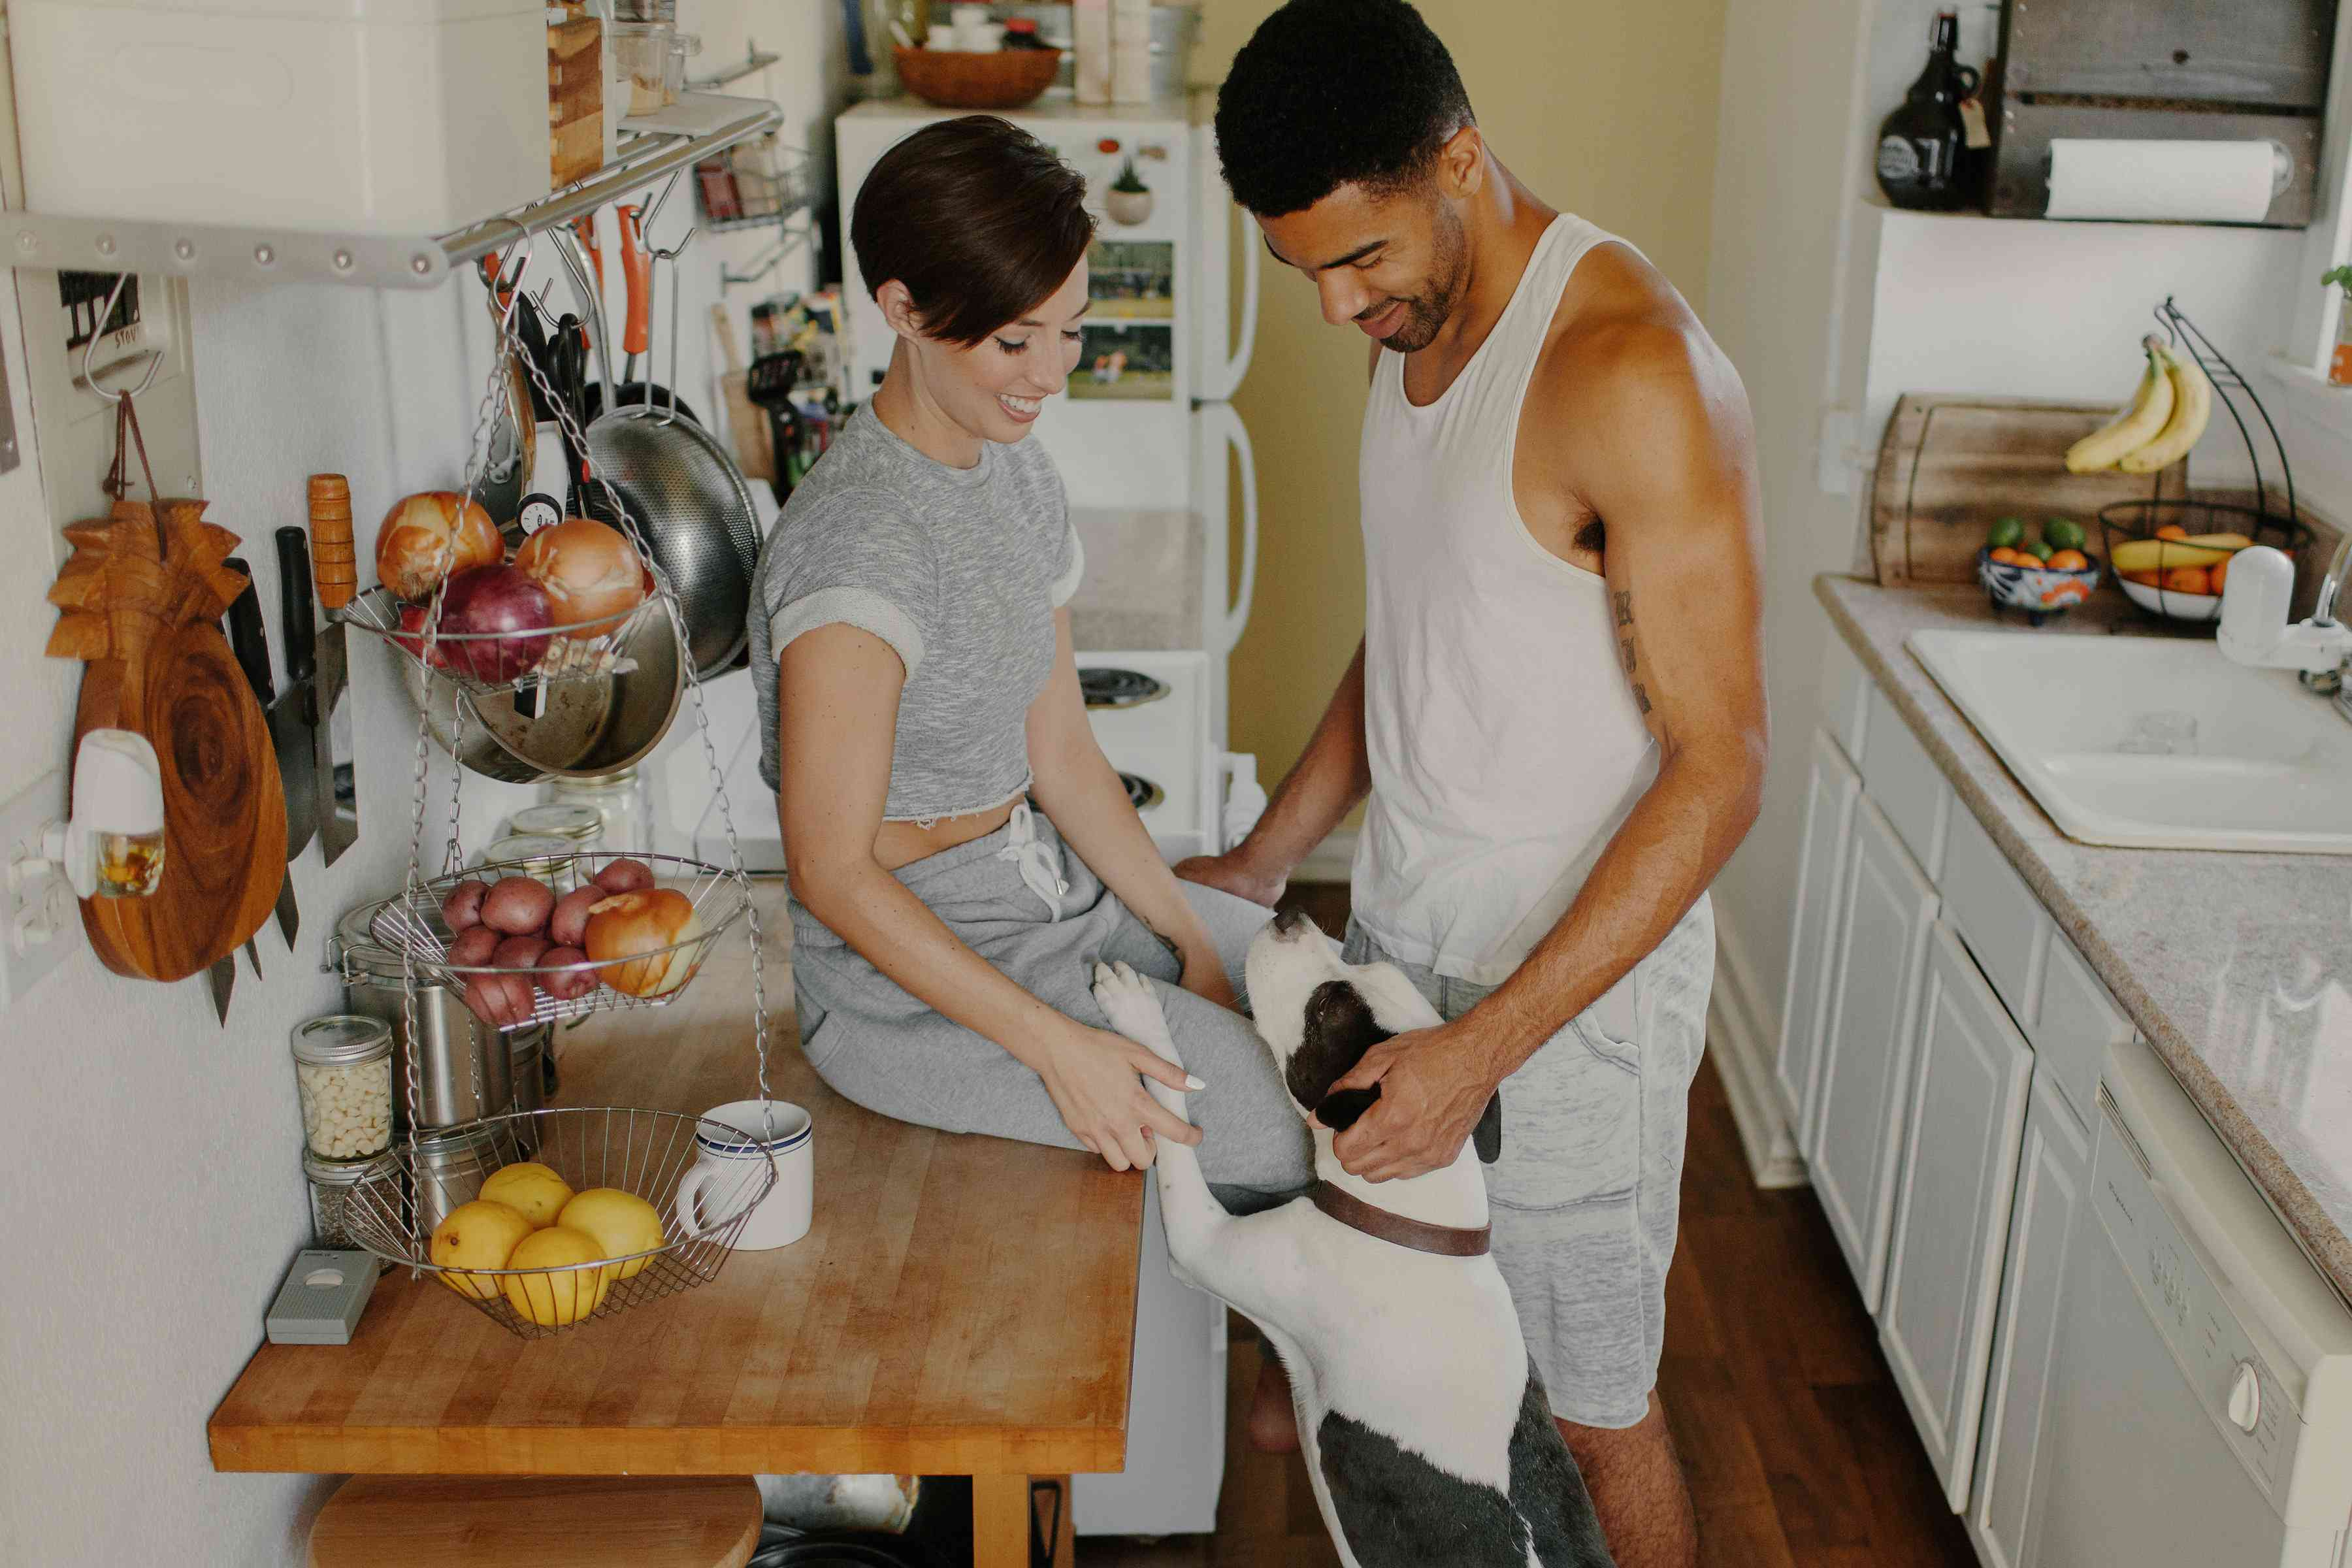 Couple in the kitchen with dog